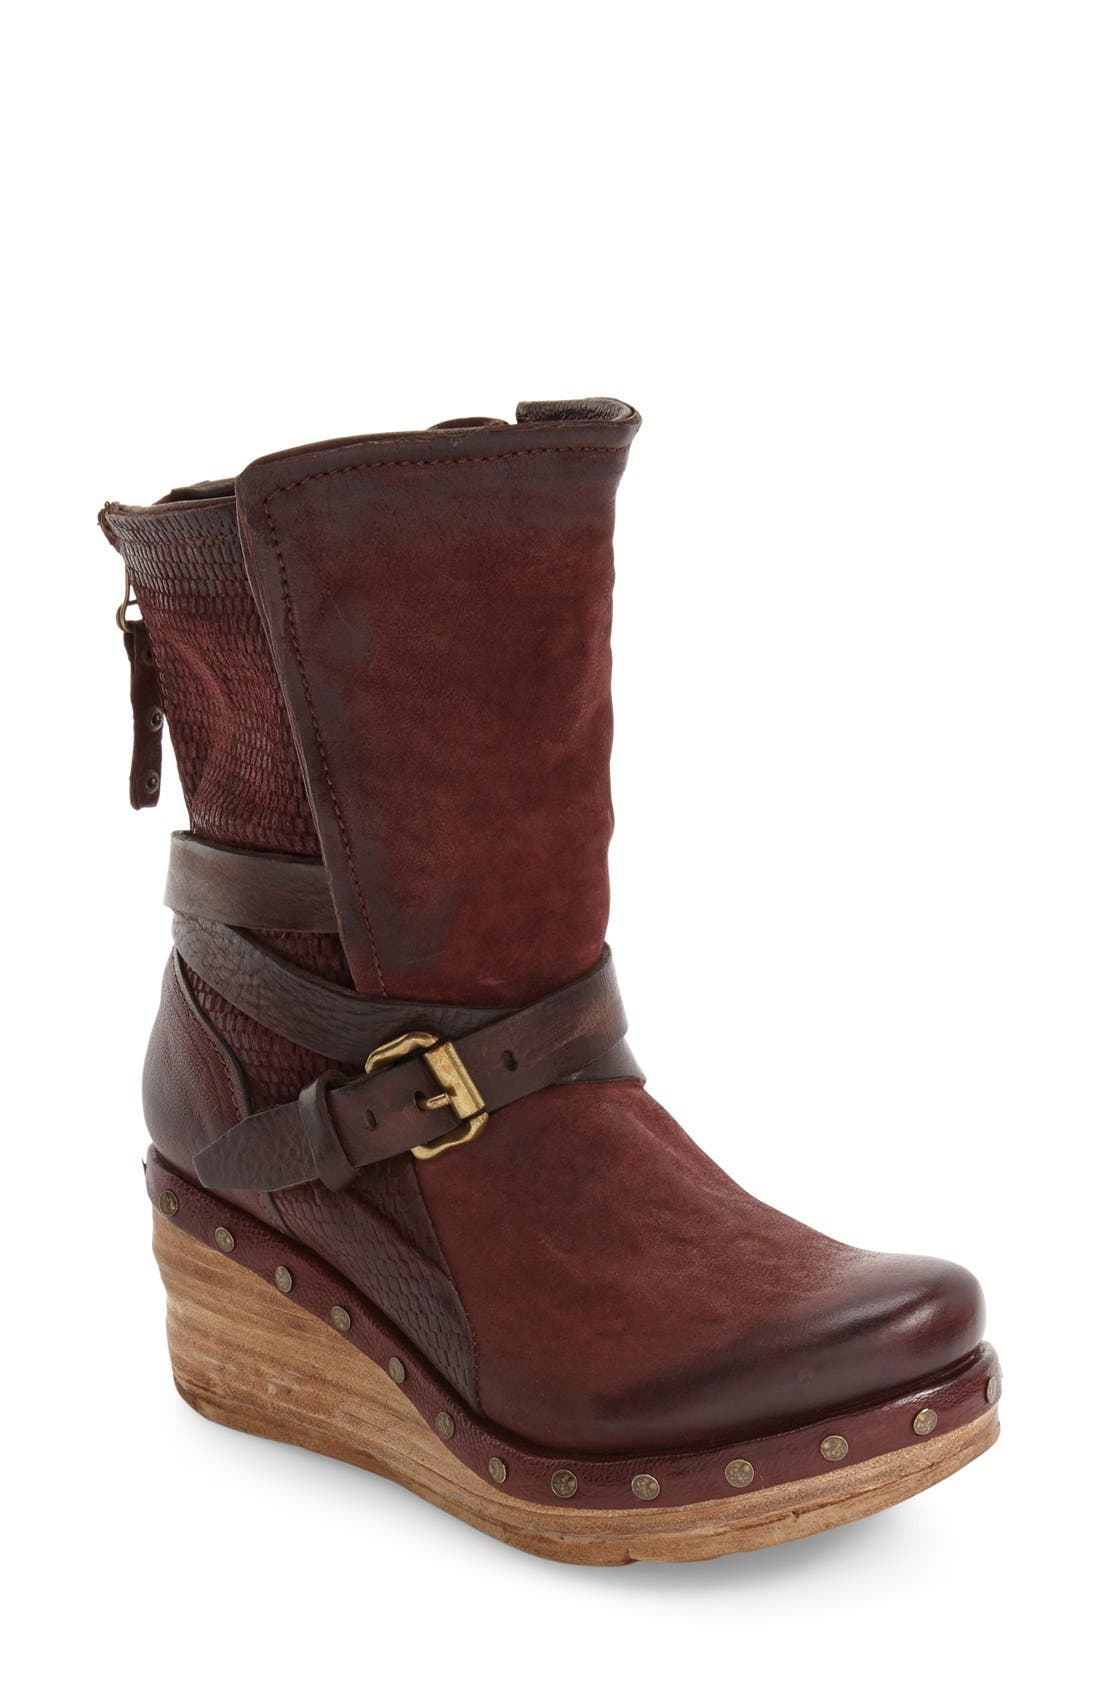 Alternate Image 1 Selected - A.S.98 Stamford Platform Wedge Boot (Women)